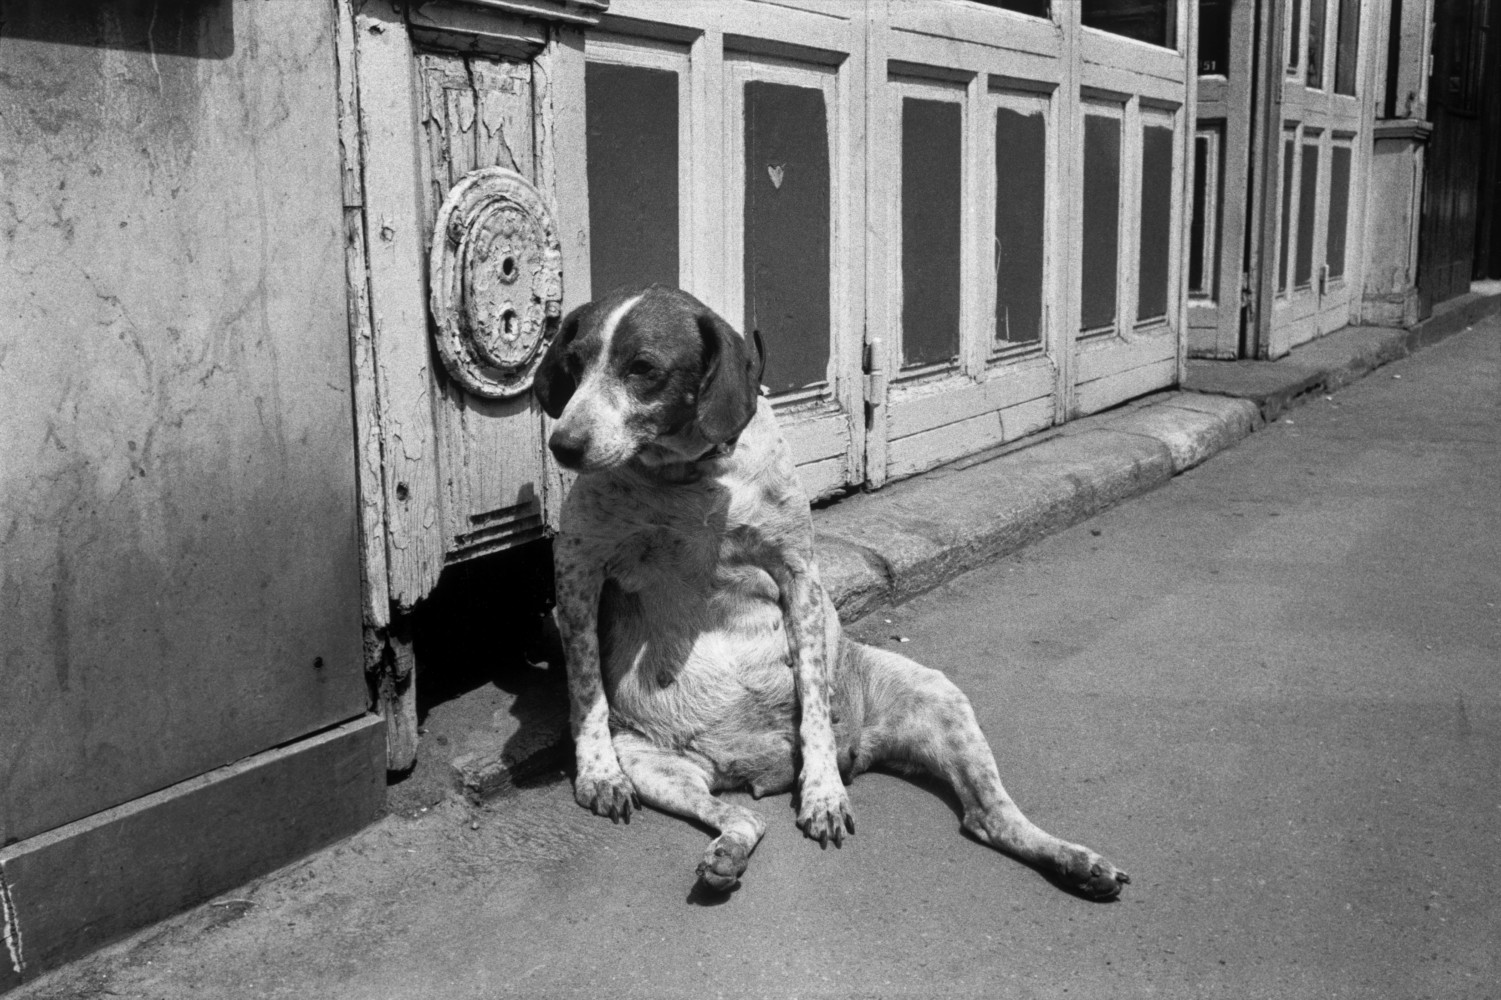 Black and white street photography by Richard Kalvar, Dog sat on the street in Paris